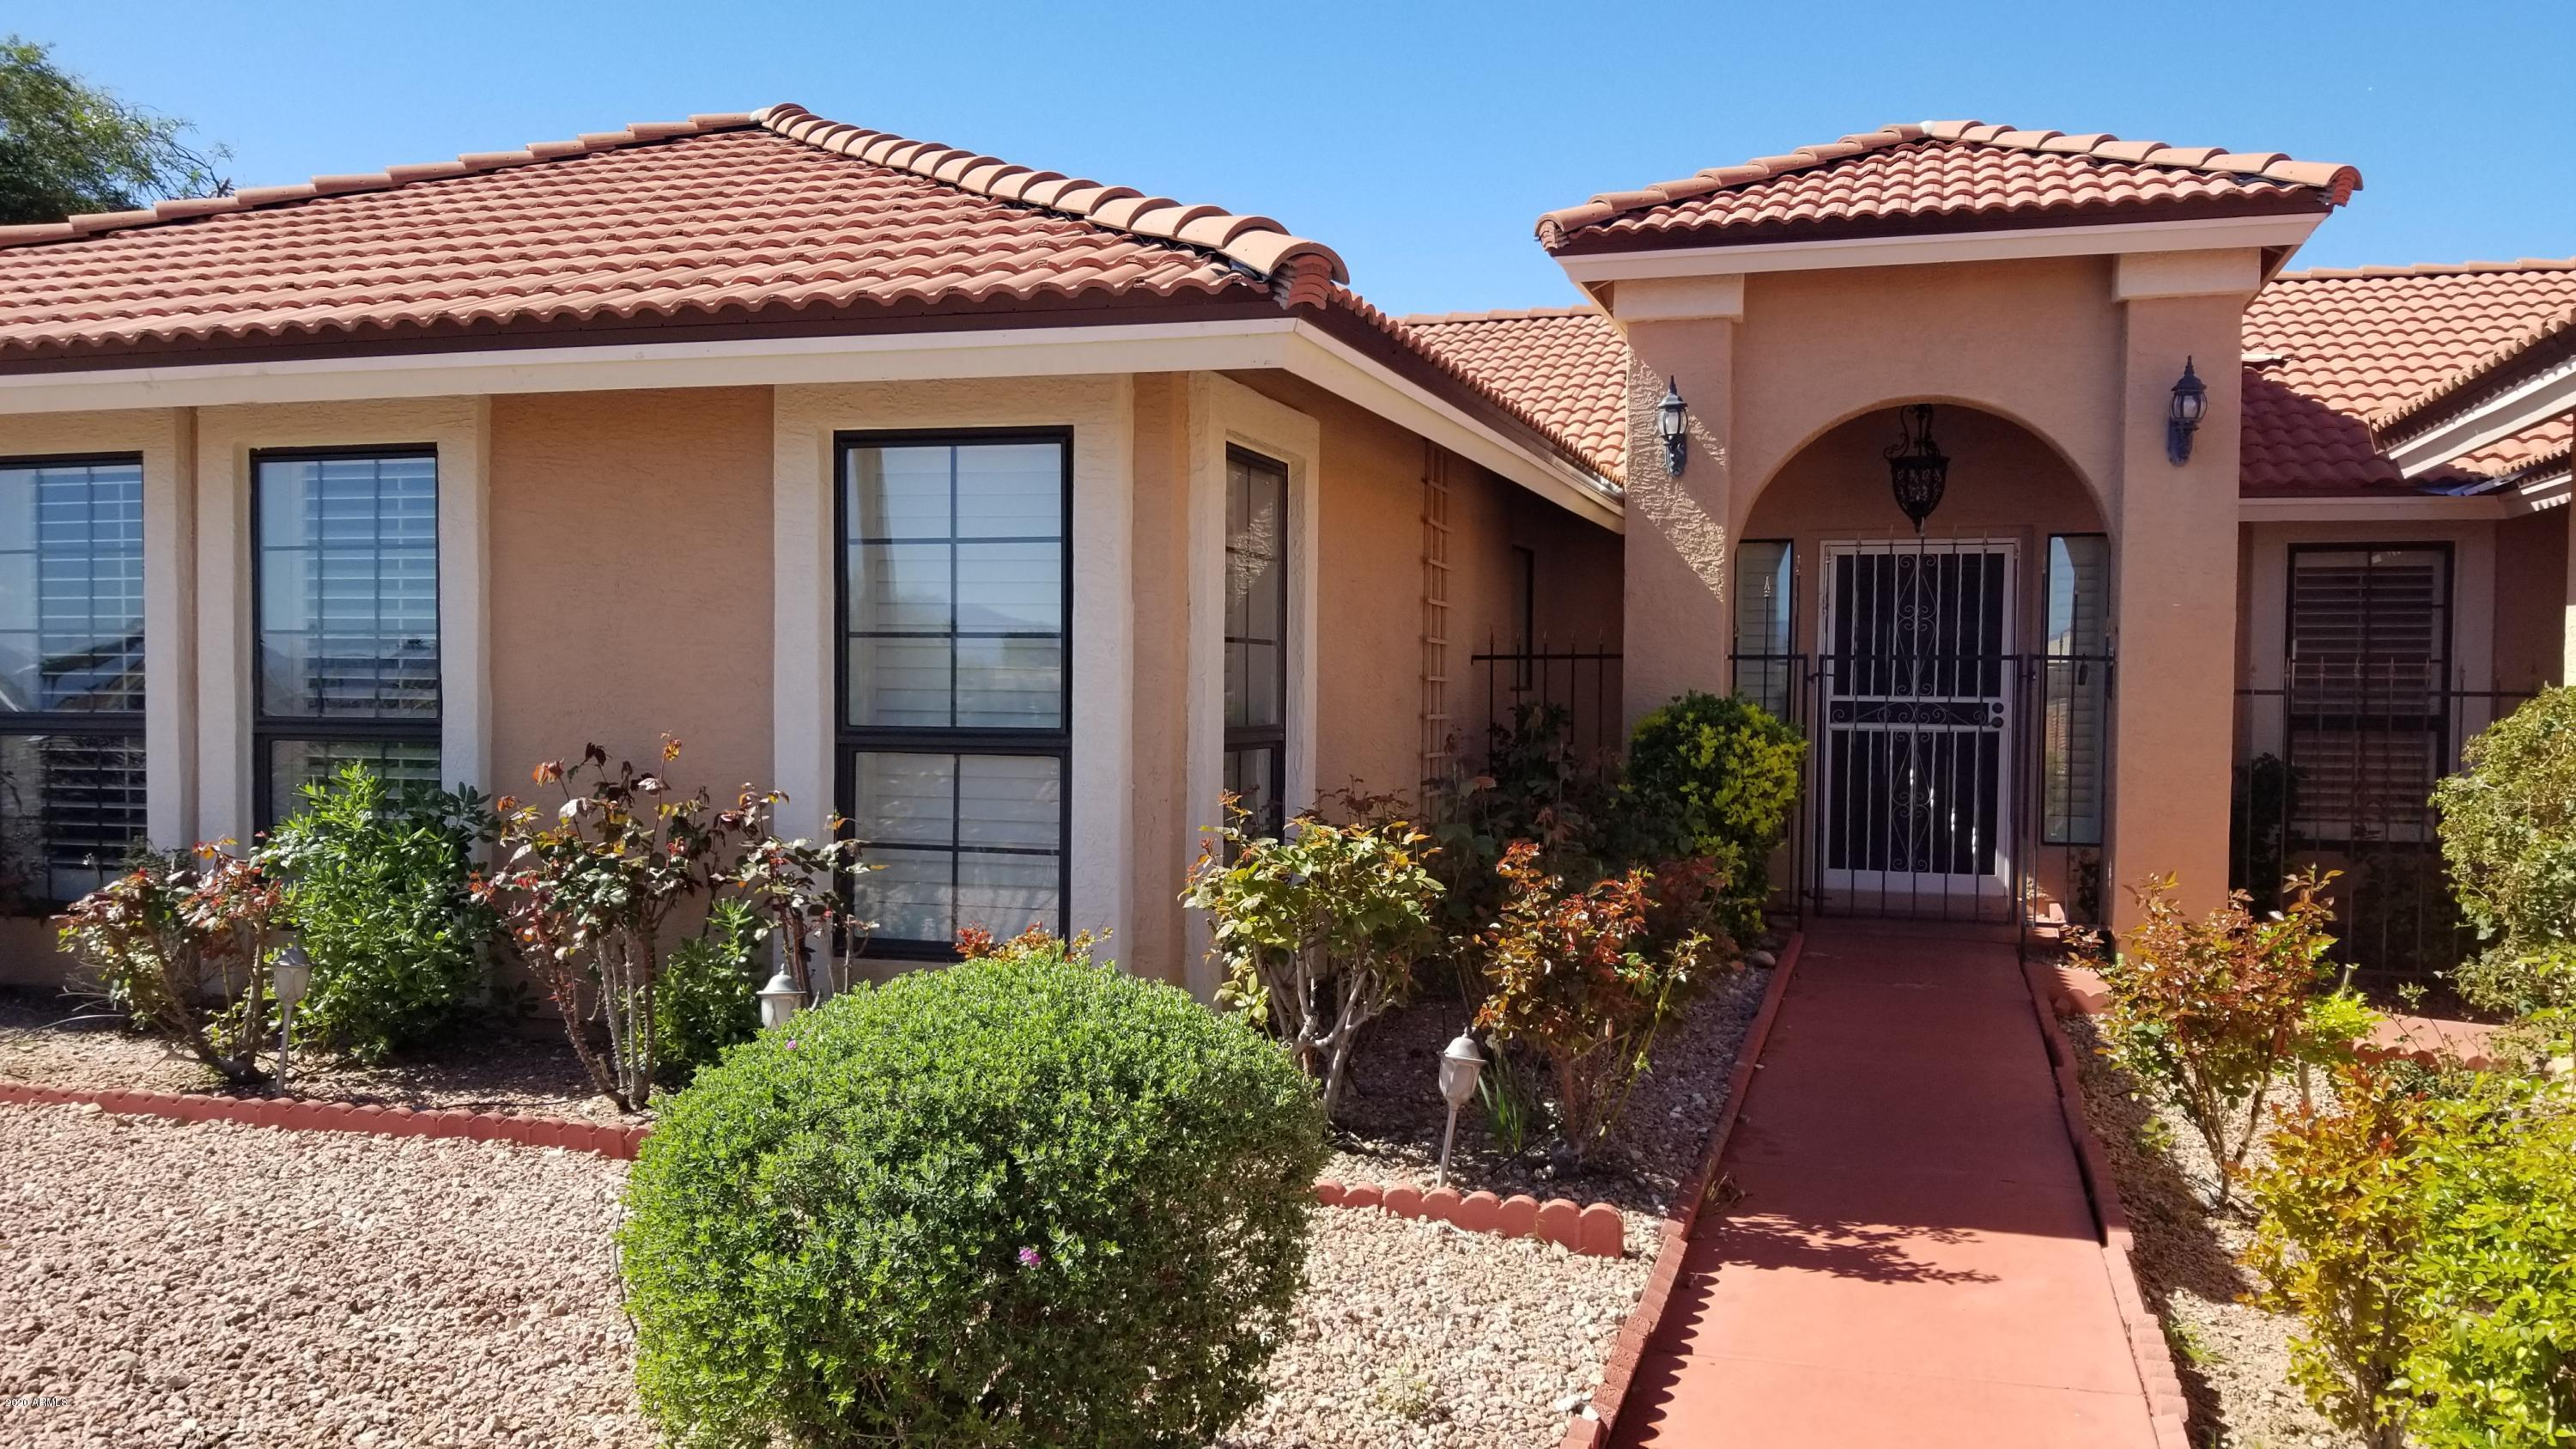 MLS 6128829 Fountain Hills Metro Area, Fountain Hills, AZ 85268 Fountain Hills Homes for Rent